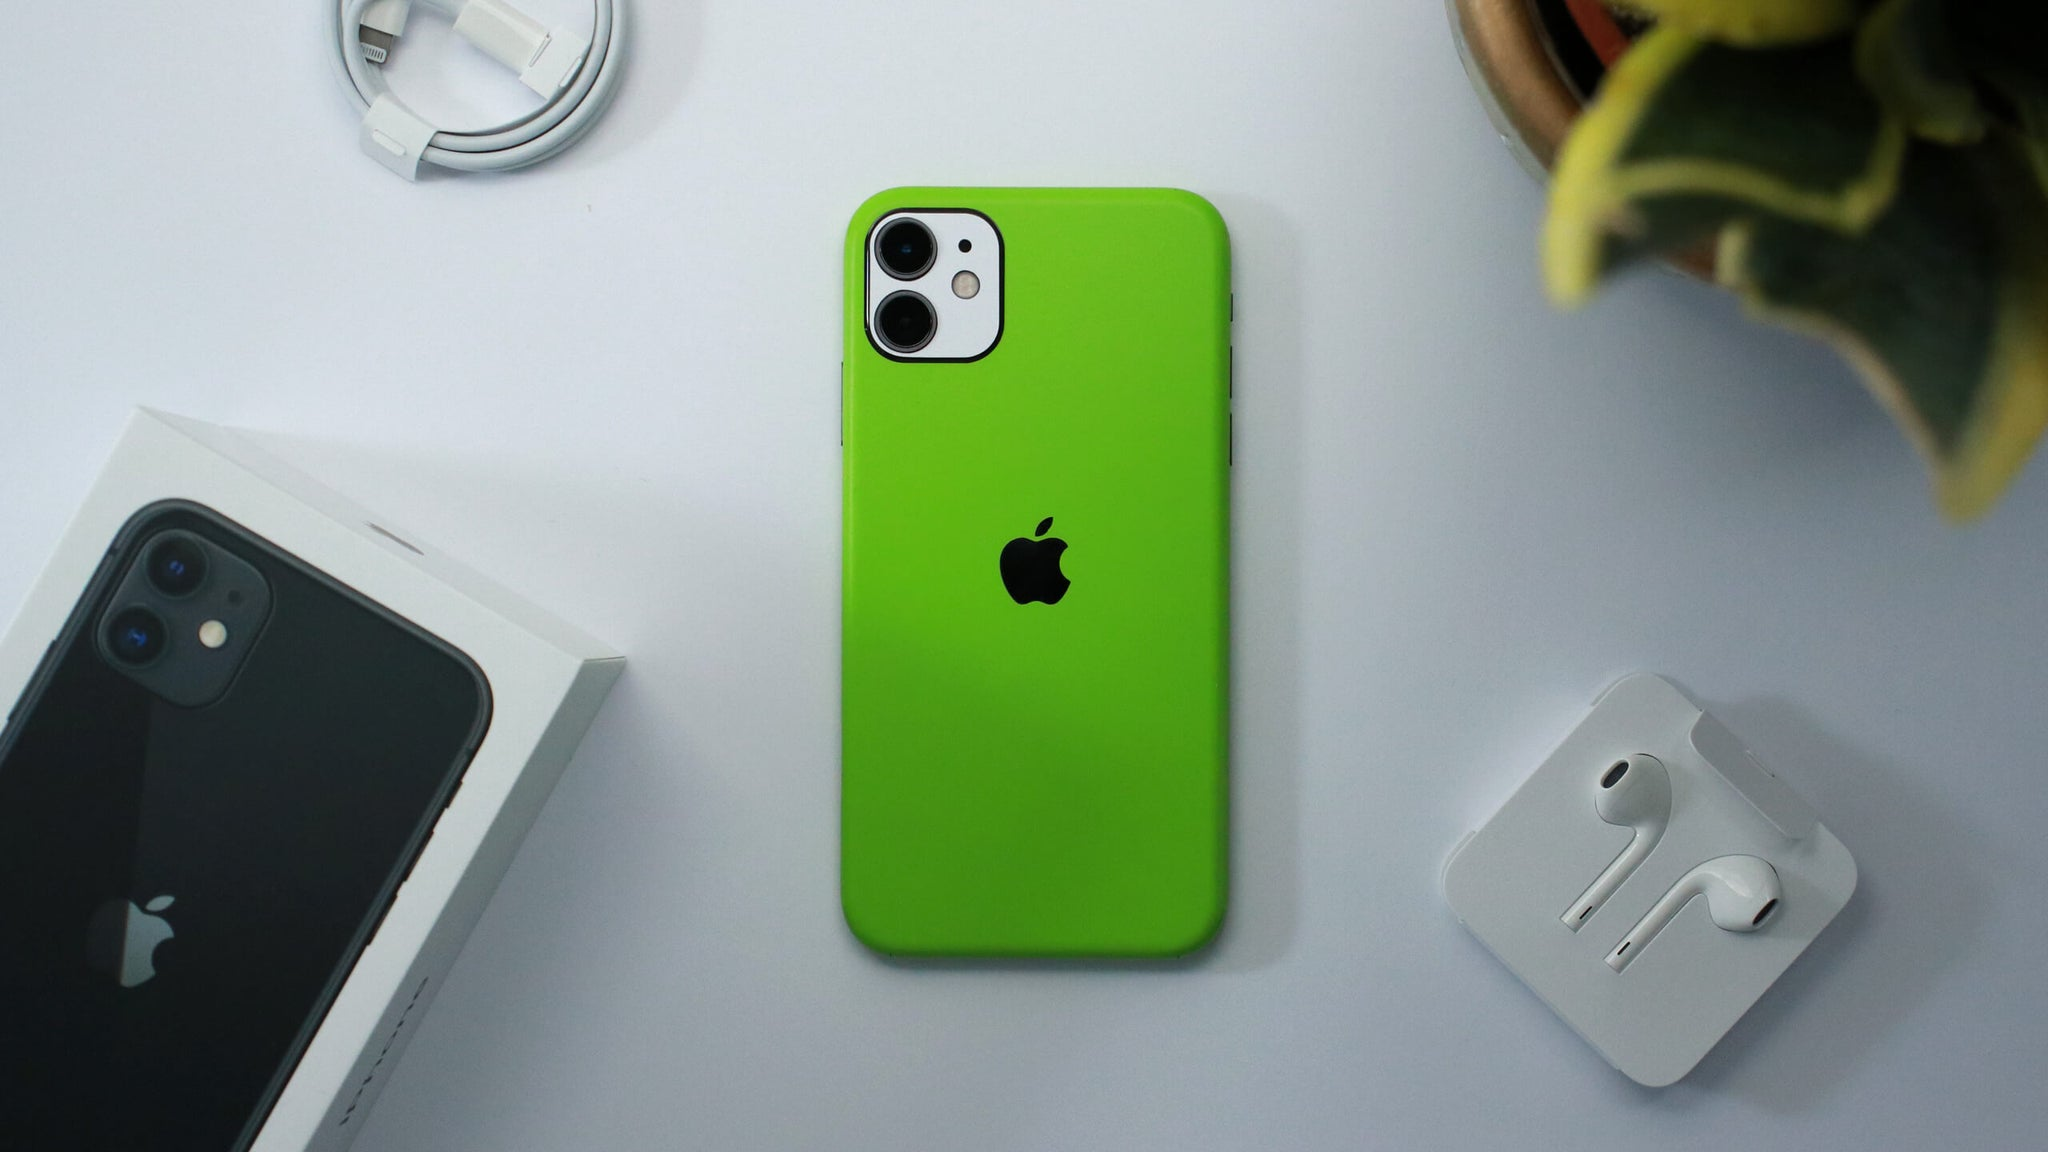 iPhone 11 Matt Green Skins